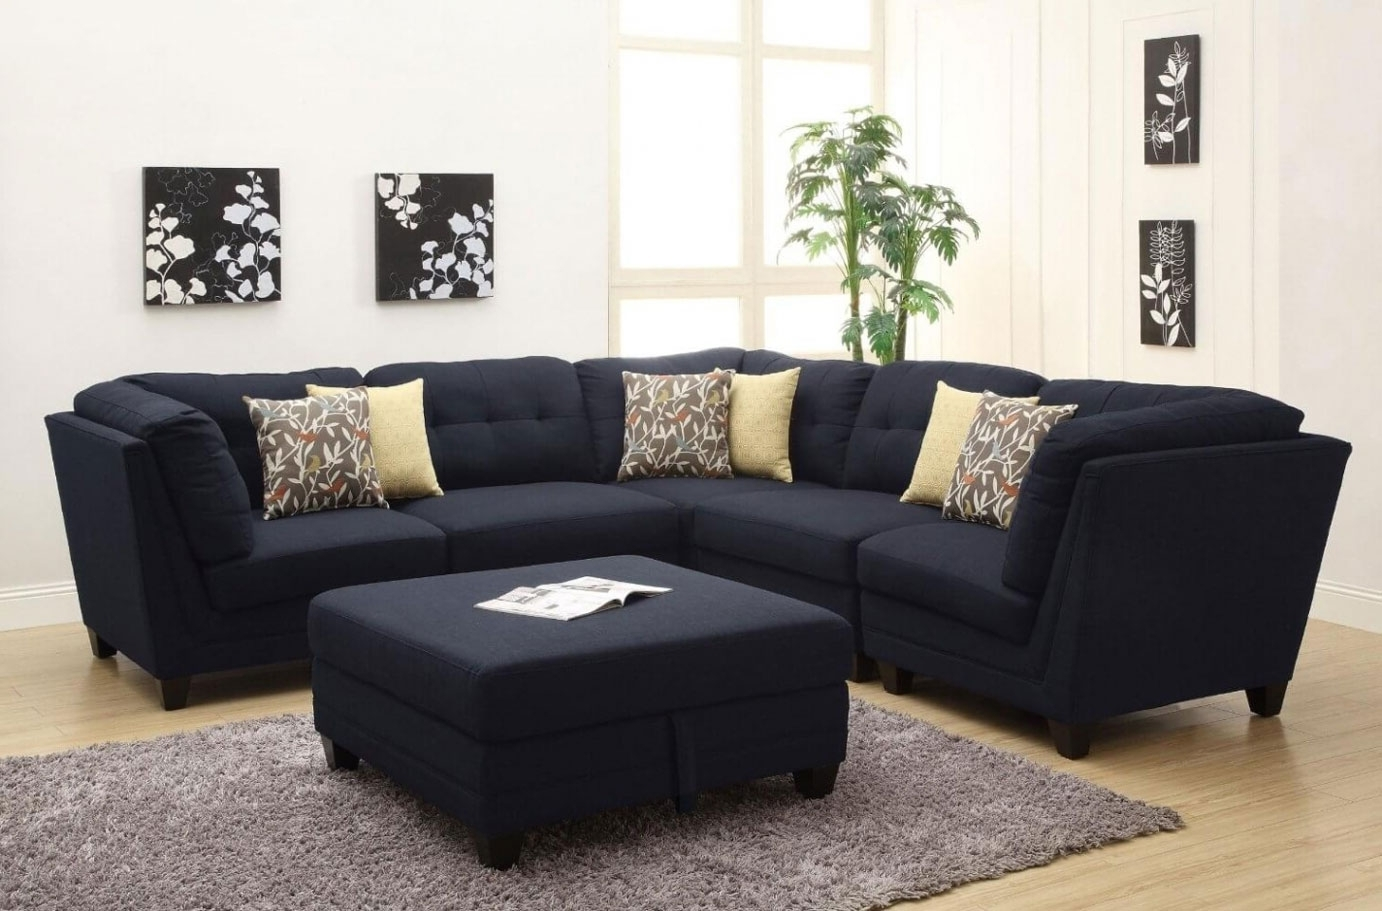 10 Photos Durham Region Sectional Sofas Sofa Ideas